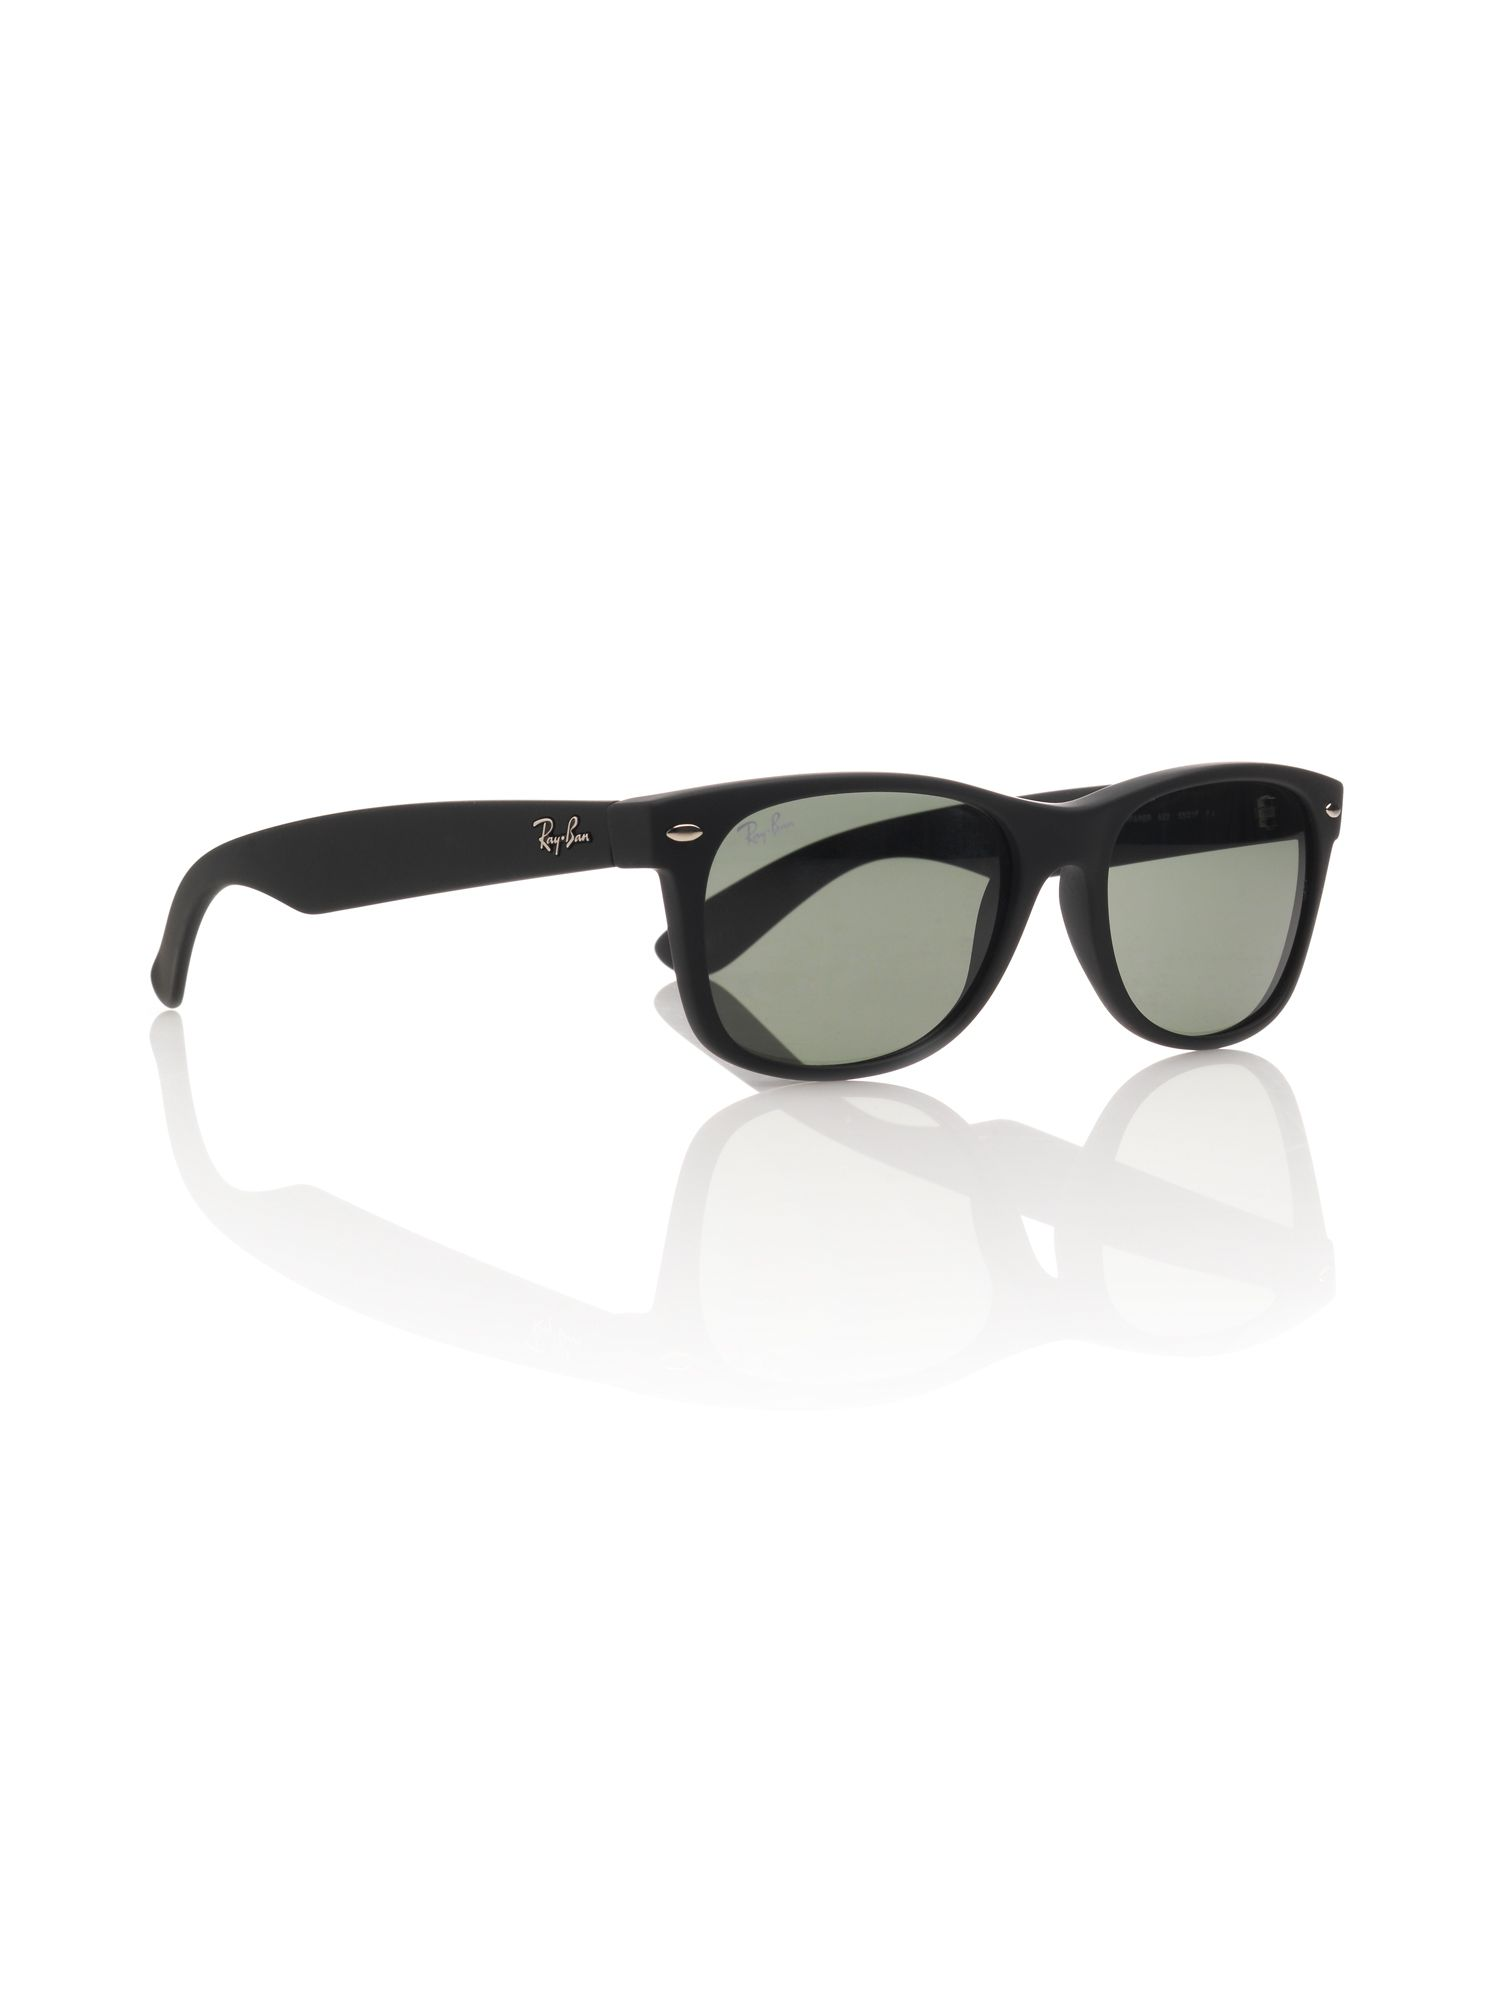 Unisex RB2132 New Wayfarer Black Sunglasses